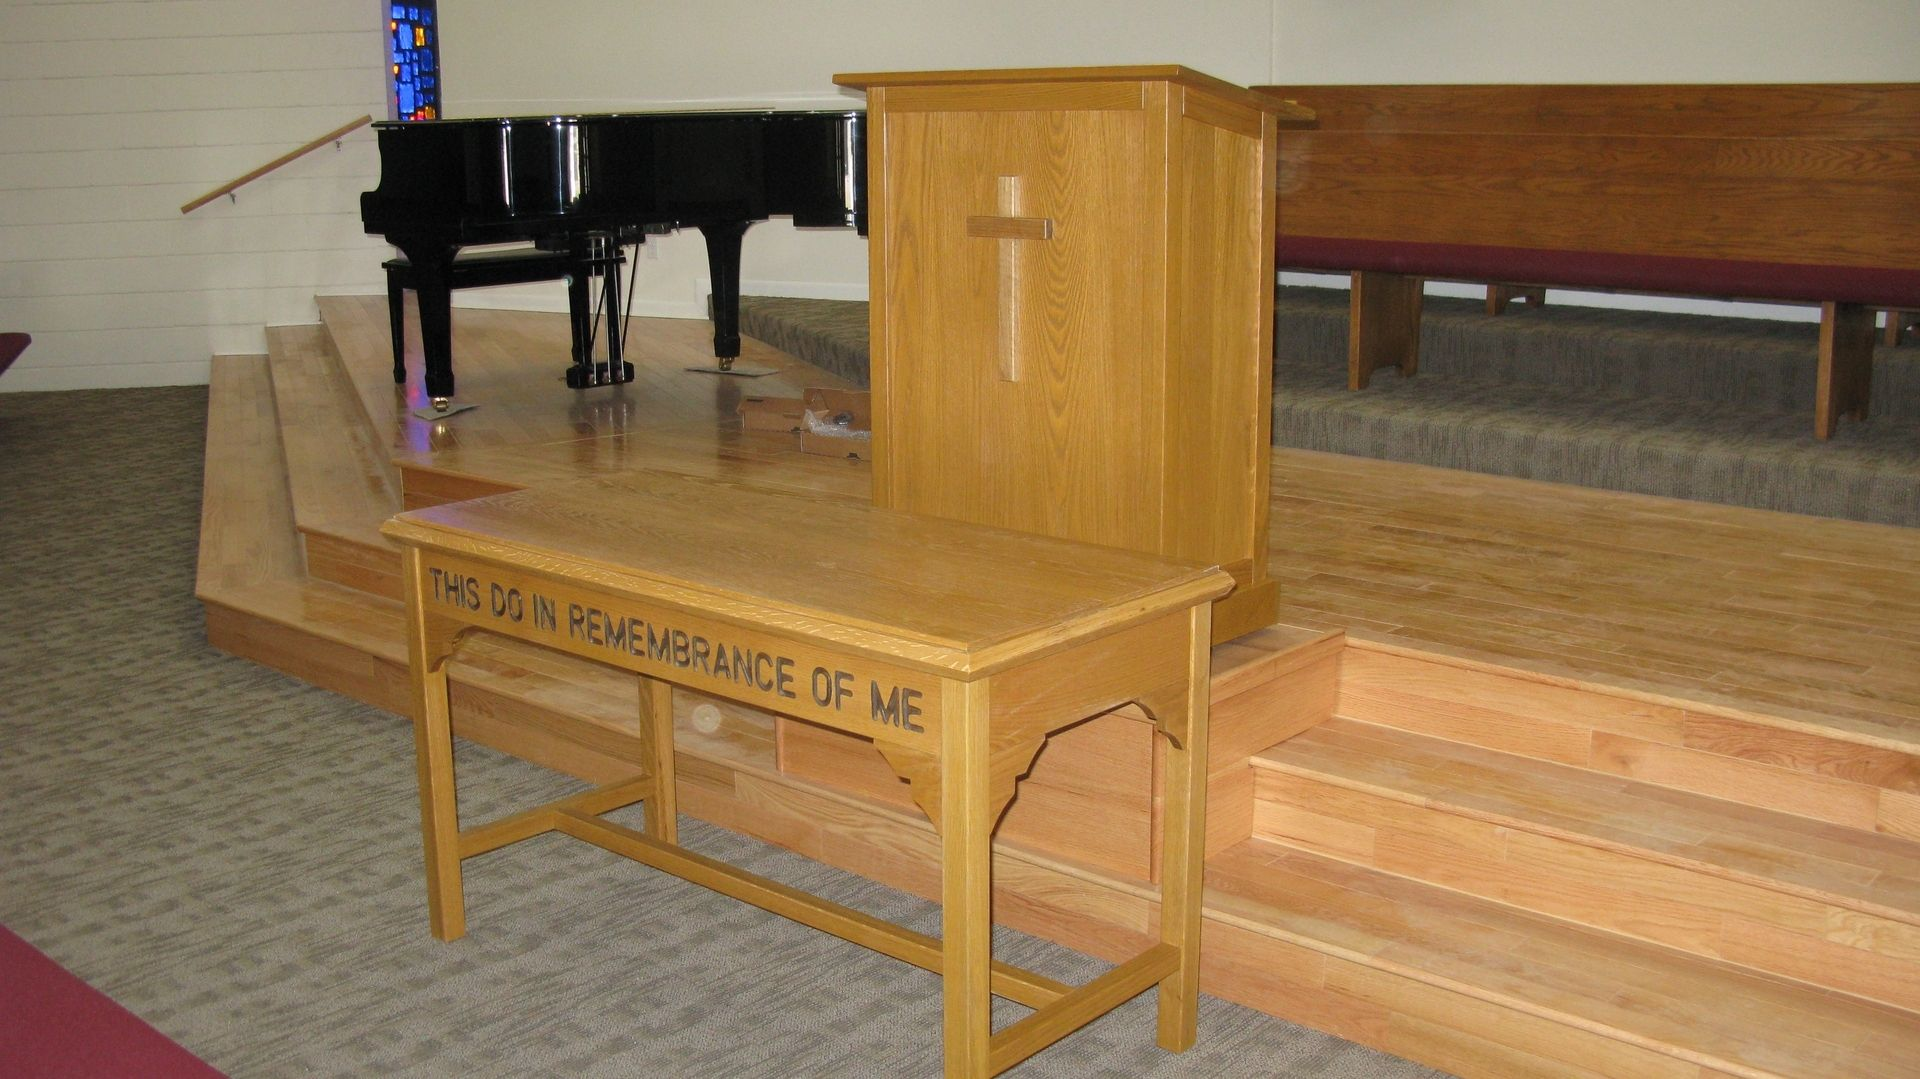 handmade a church communion table and pulpittom's handcrafted